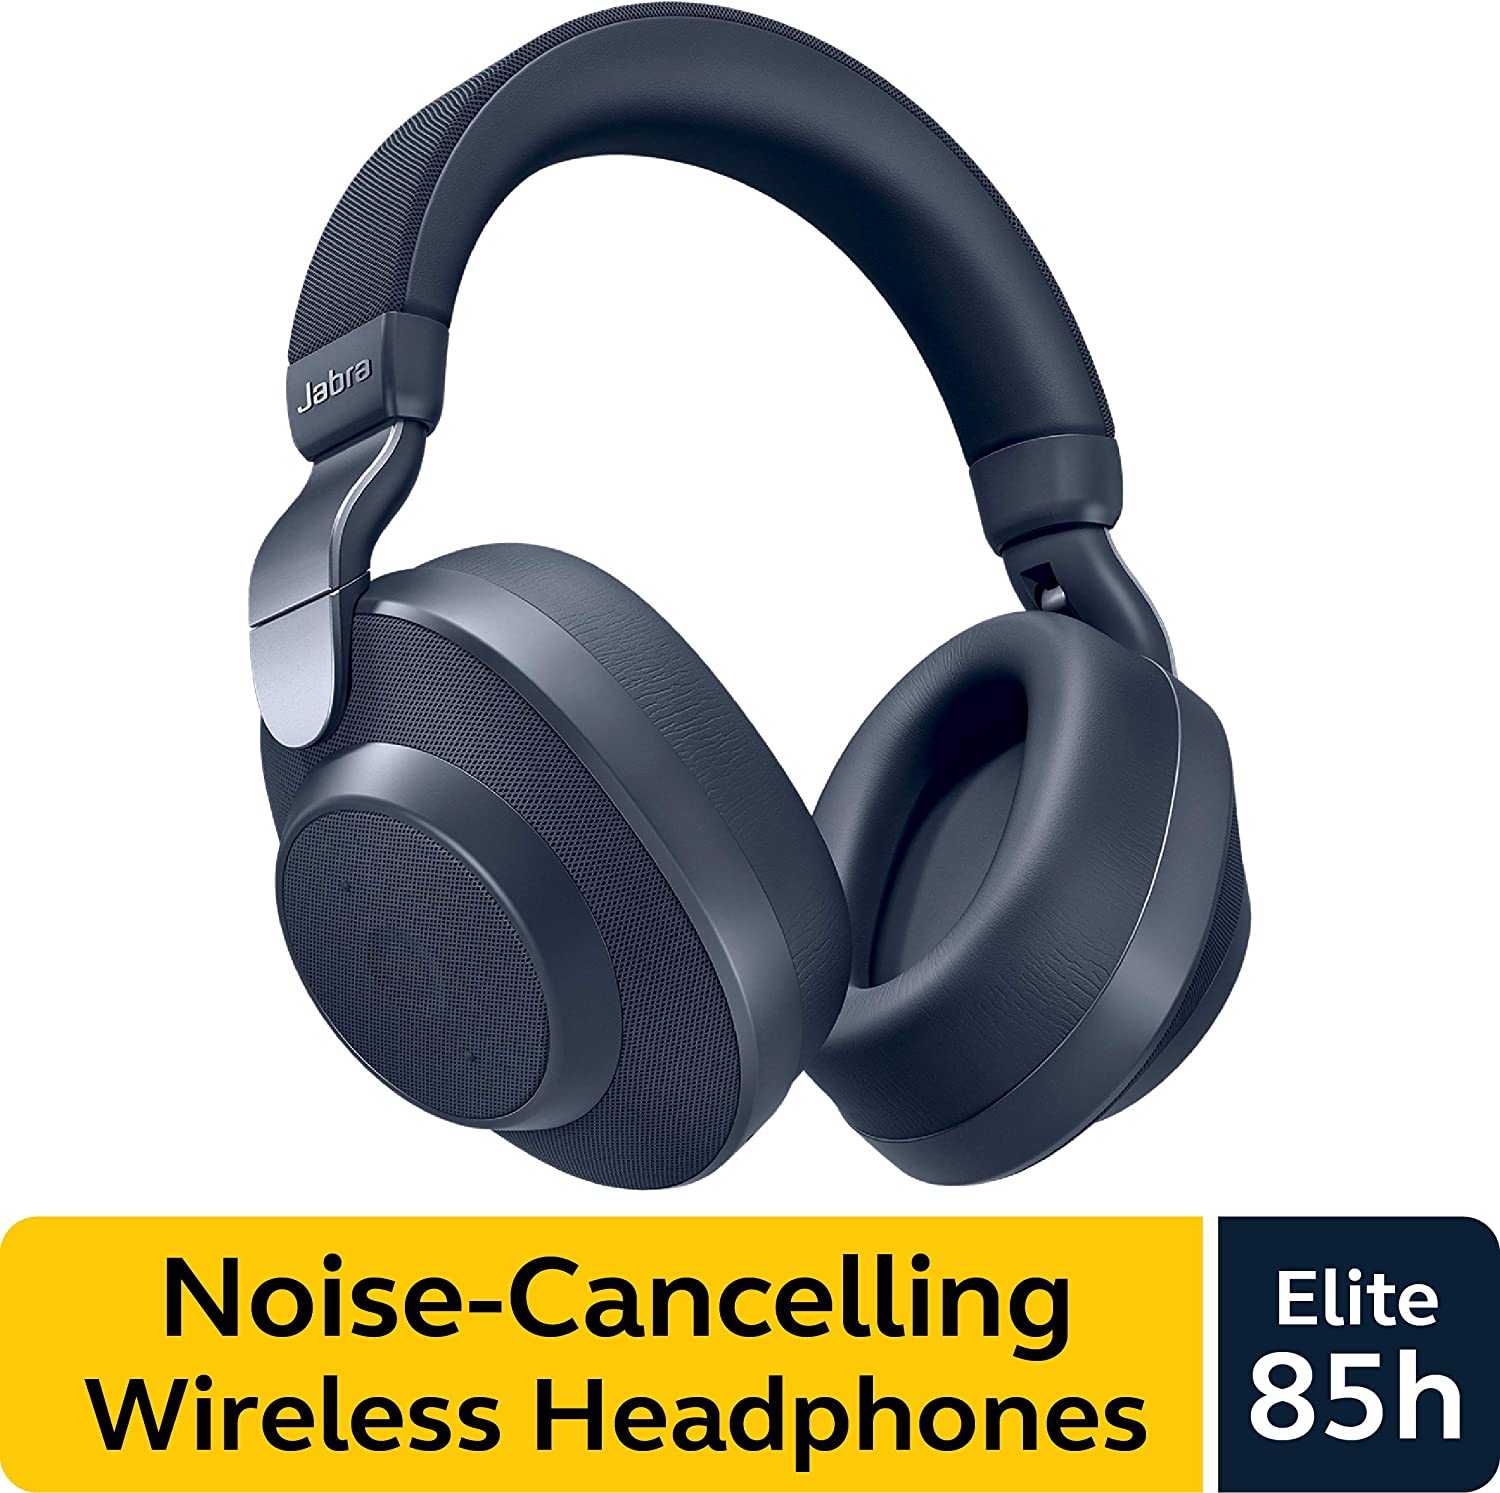 Jabra Elite 85h Wireless Noise-Canceling Headphones, Navy – Over Ear Bluetooth Headphones Compatible with iPhone and Android - Built-in Microphone, Long Battery Life - Rain and Water Resistant